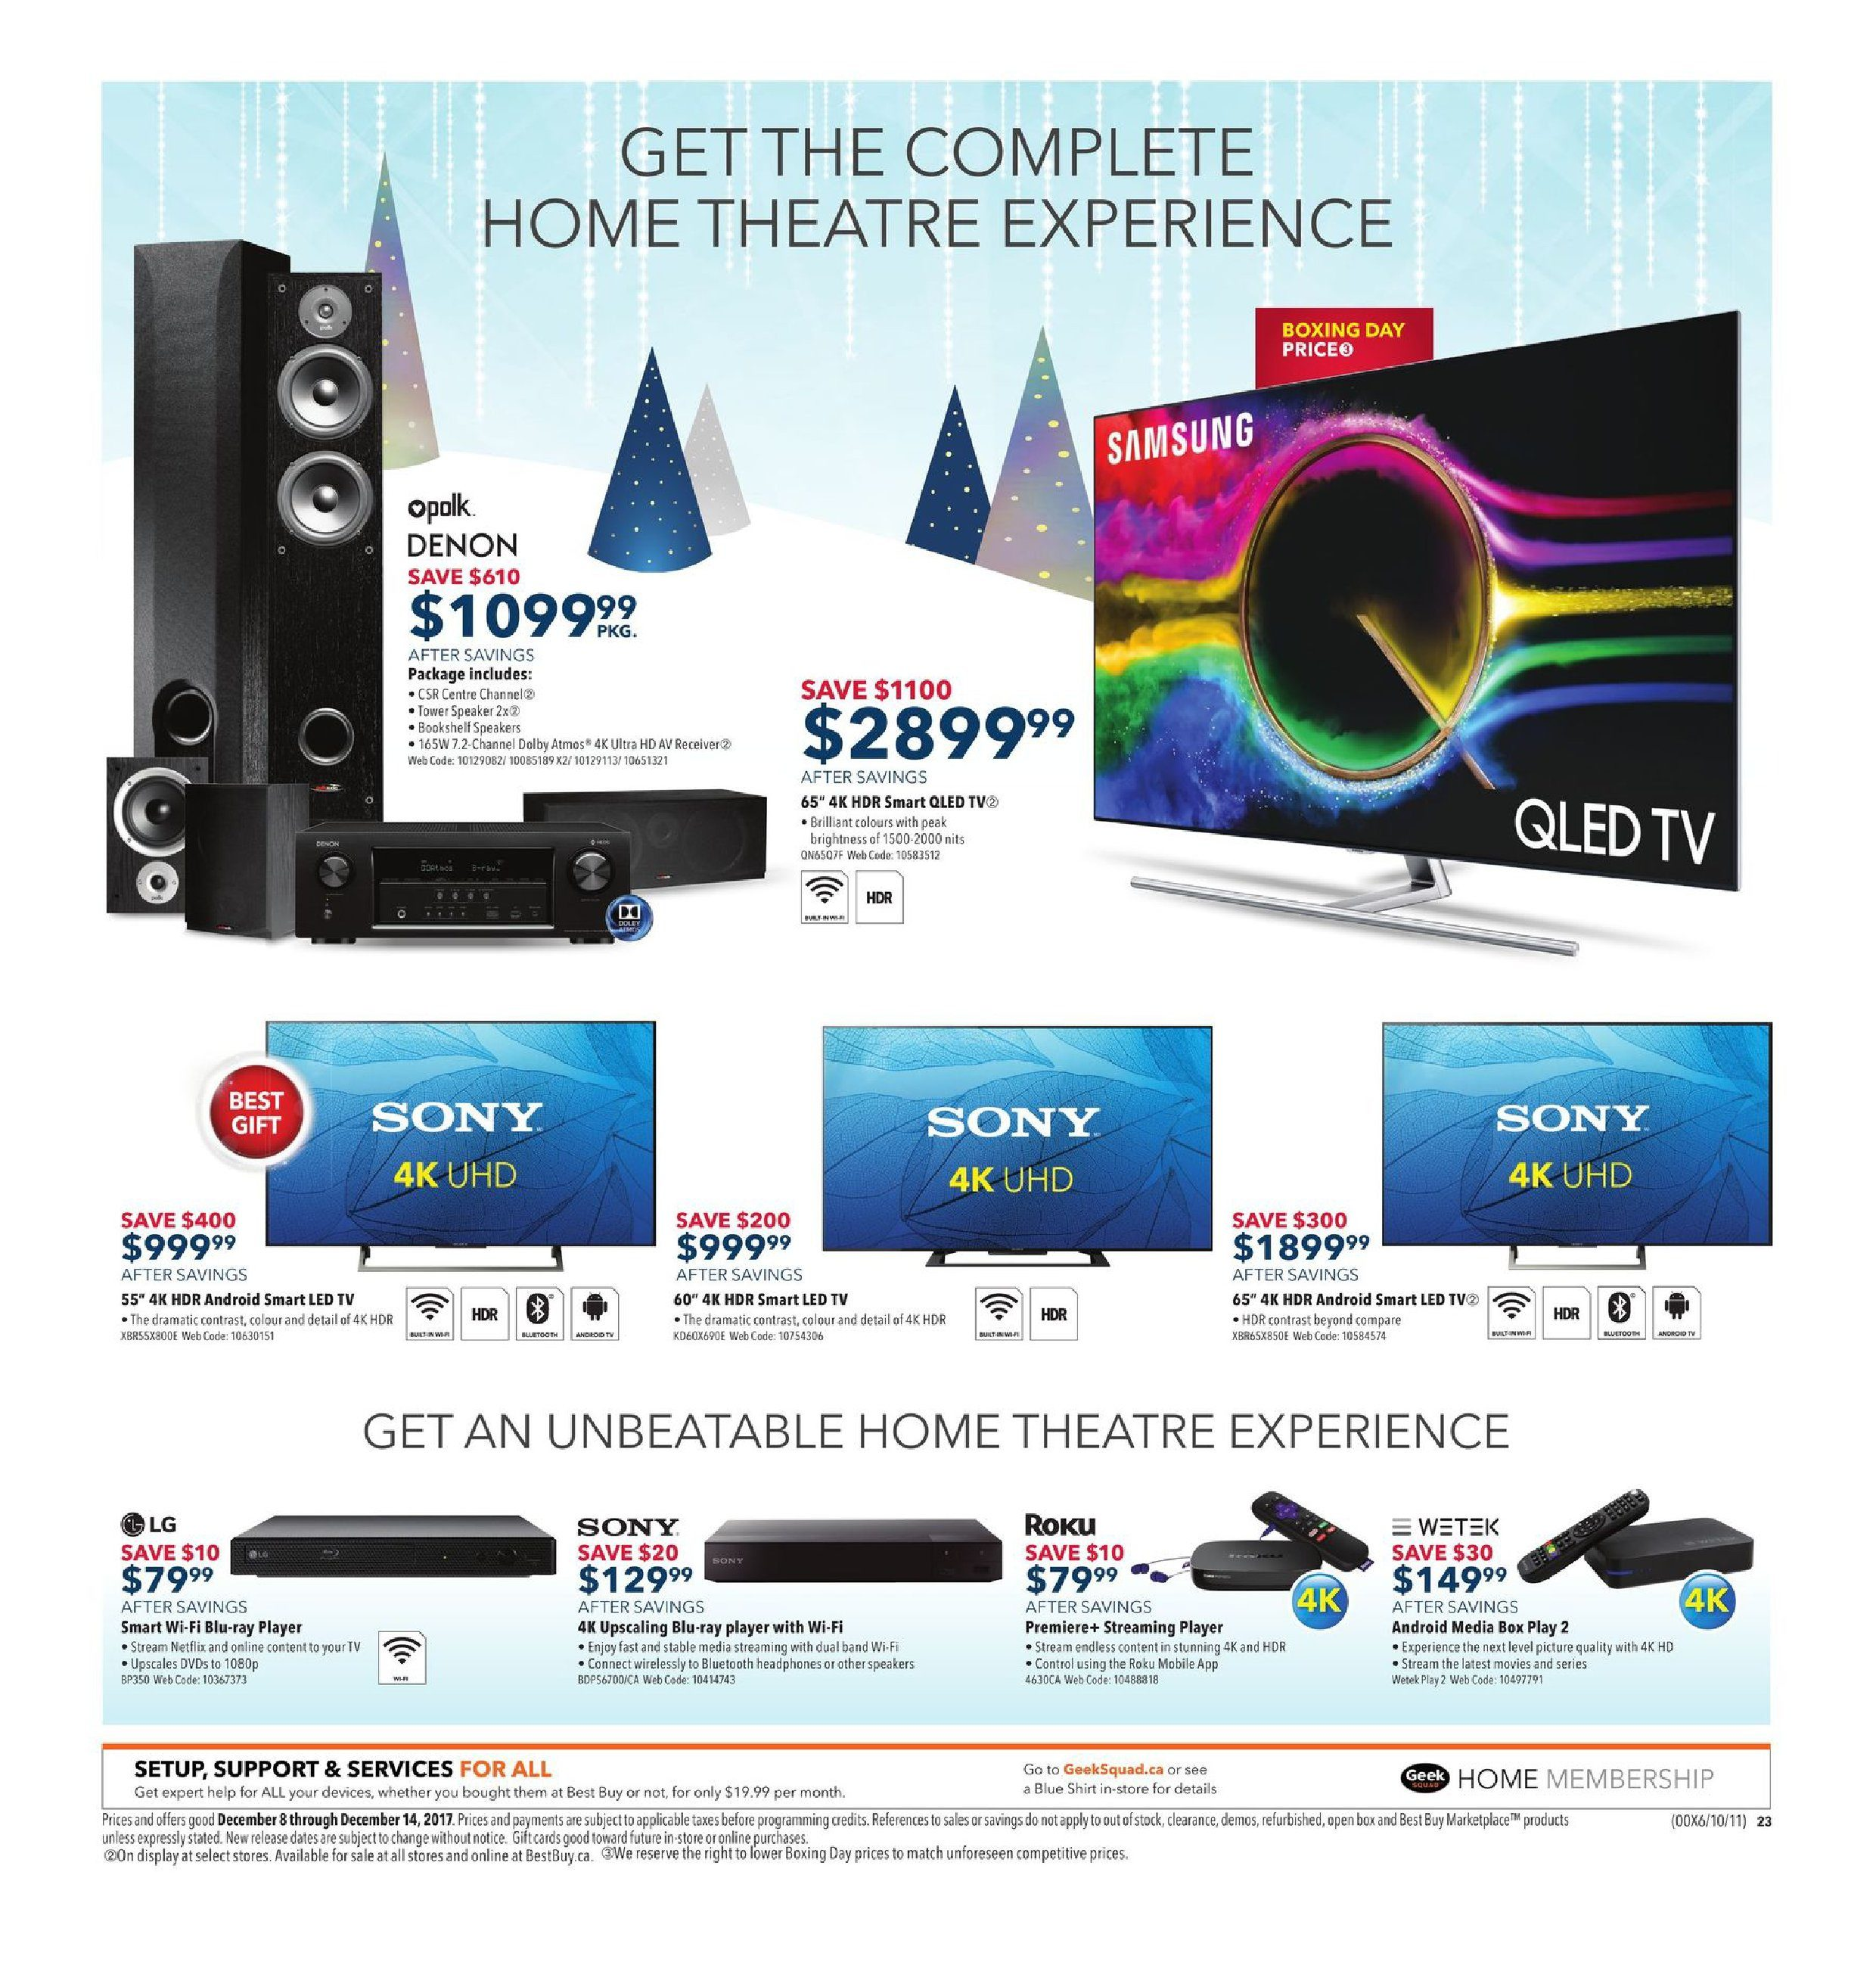 Best Buy Weekly Flyer Holiday Gift Sale Dec 8 14 Picture Of Quiz Show Buzzer System Using Staples Easy Button